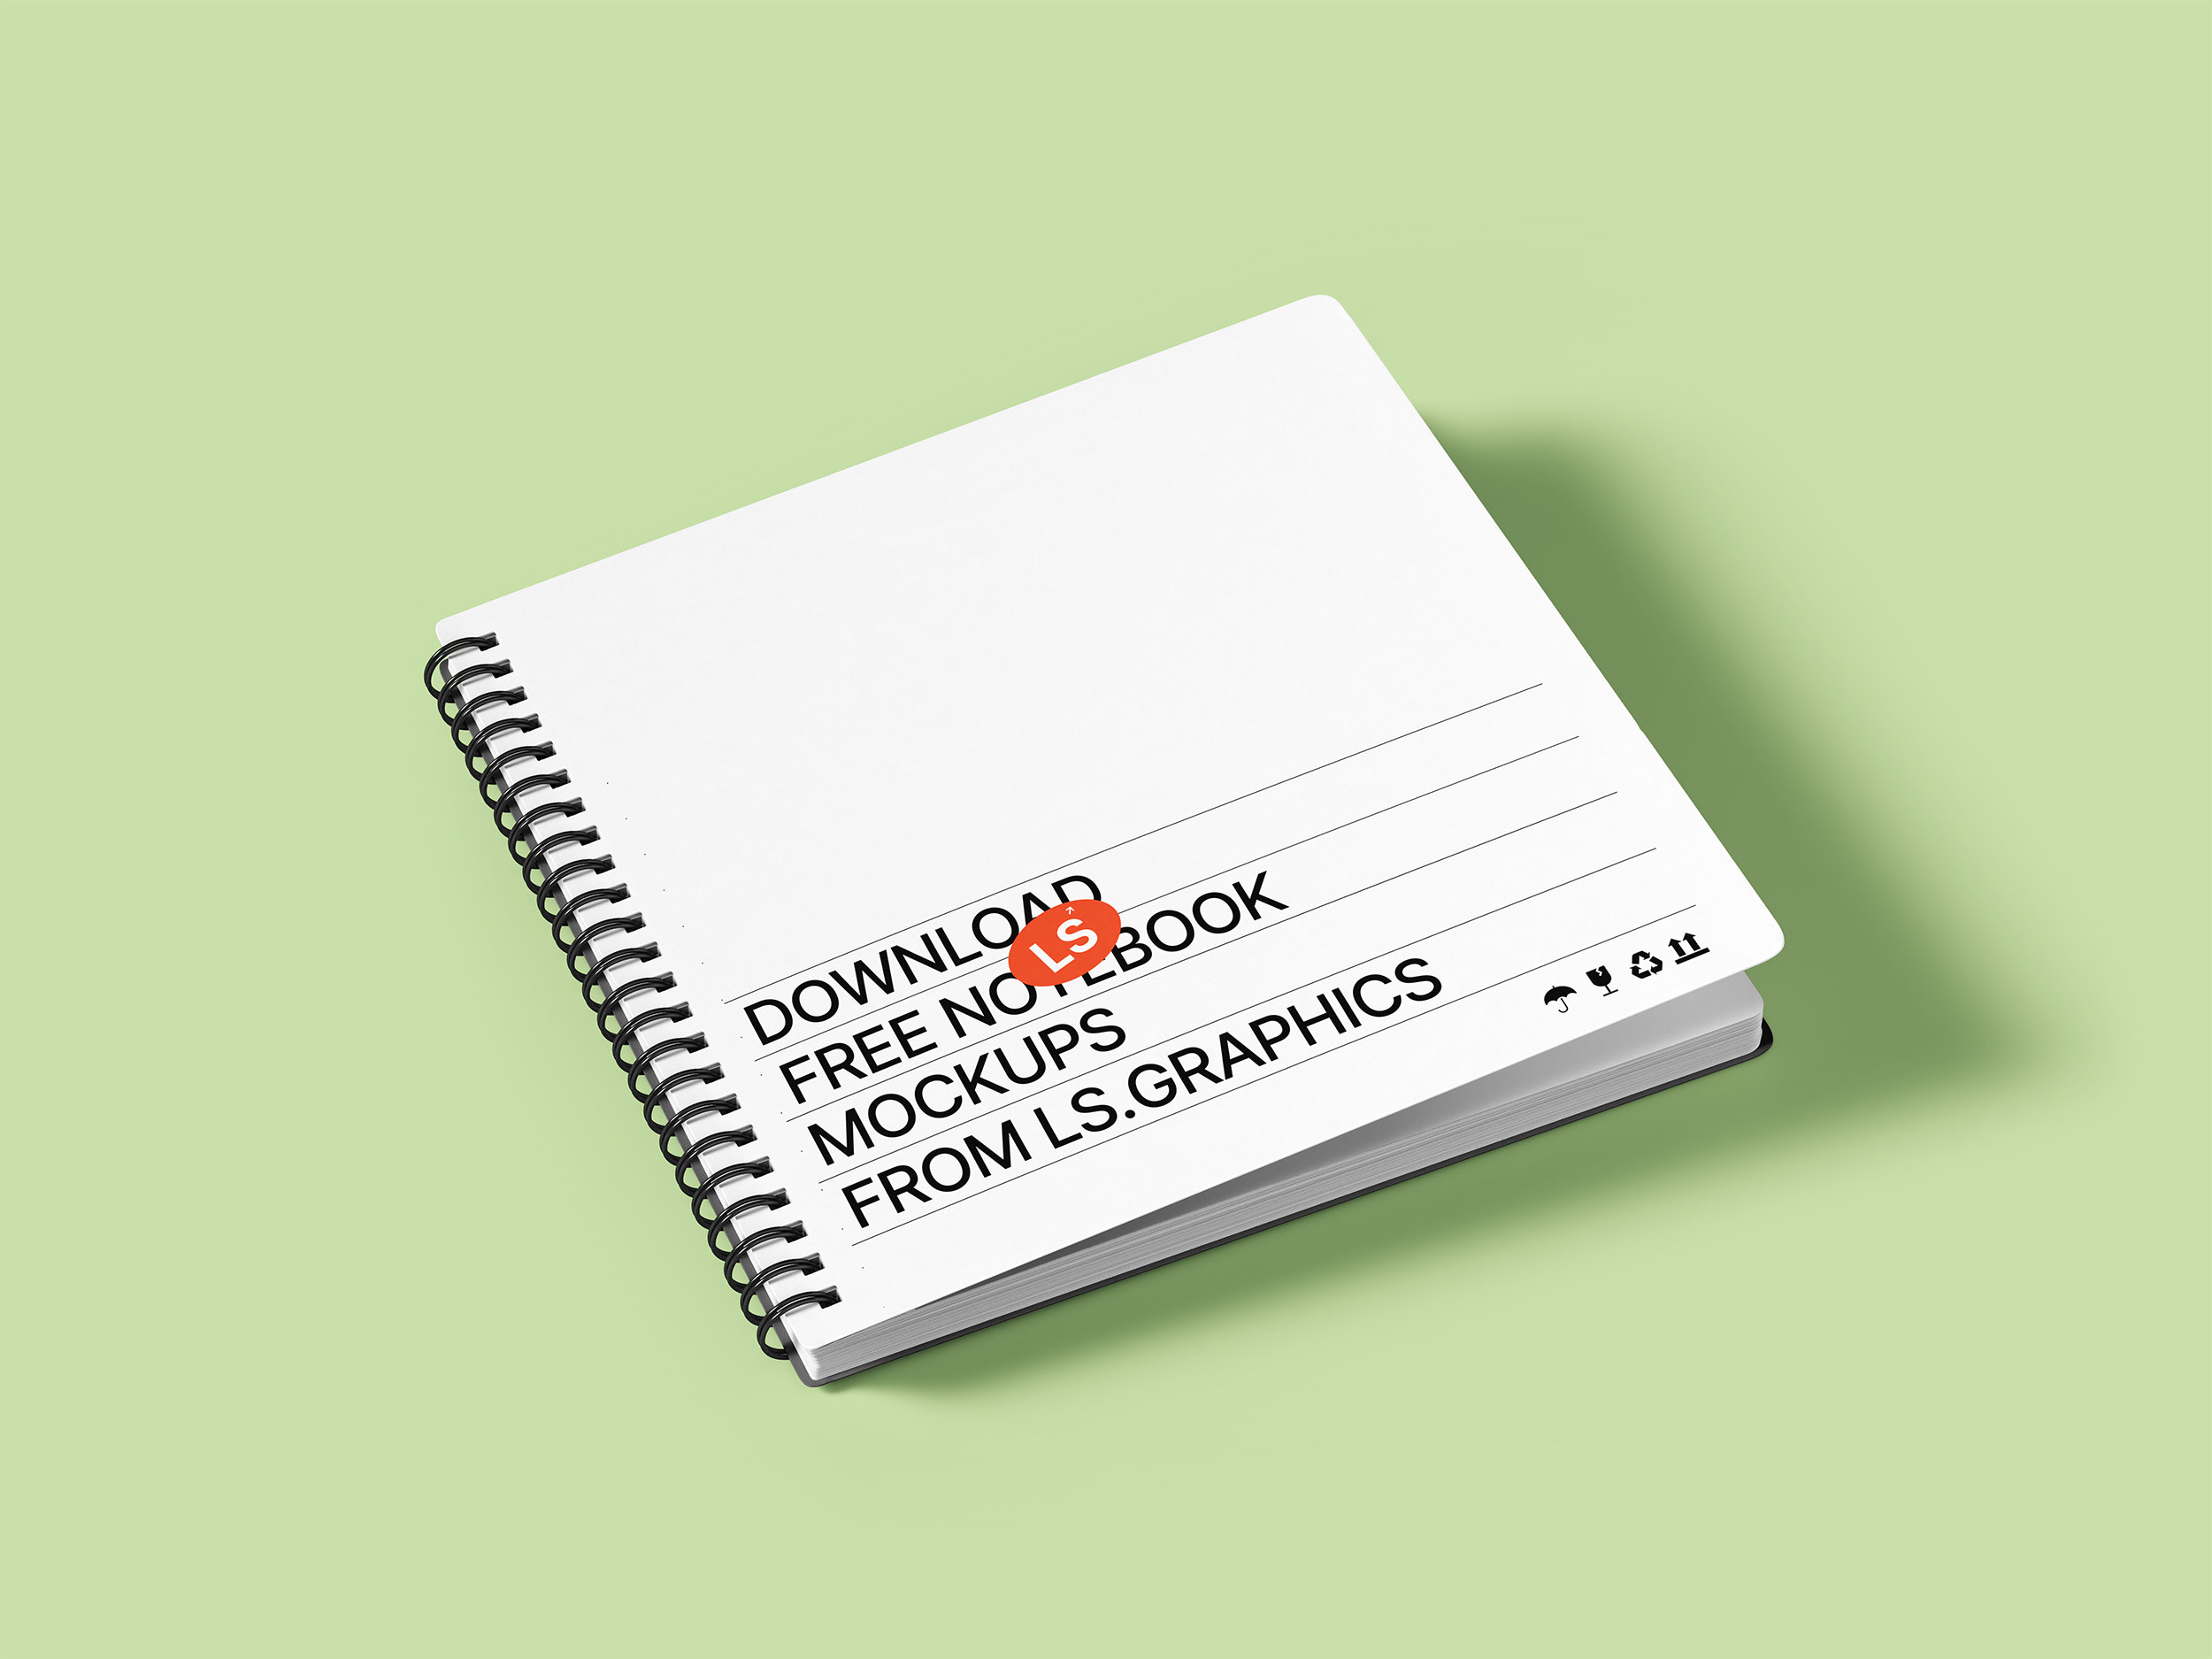 Rounded Corners Spiral Notebook Free Mockup